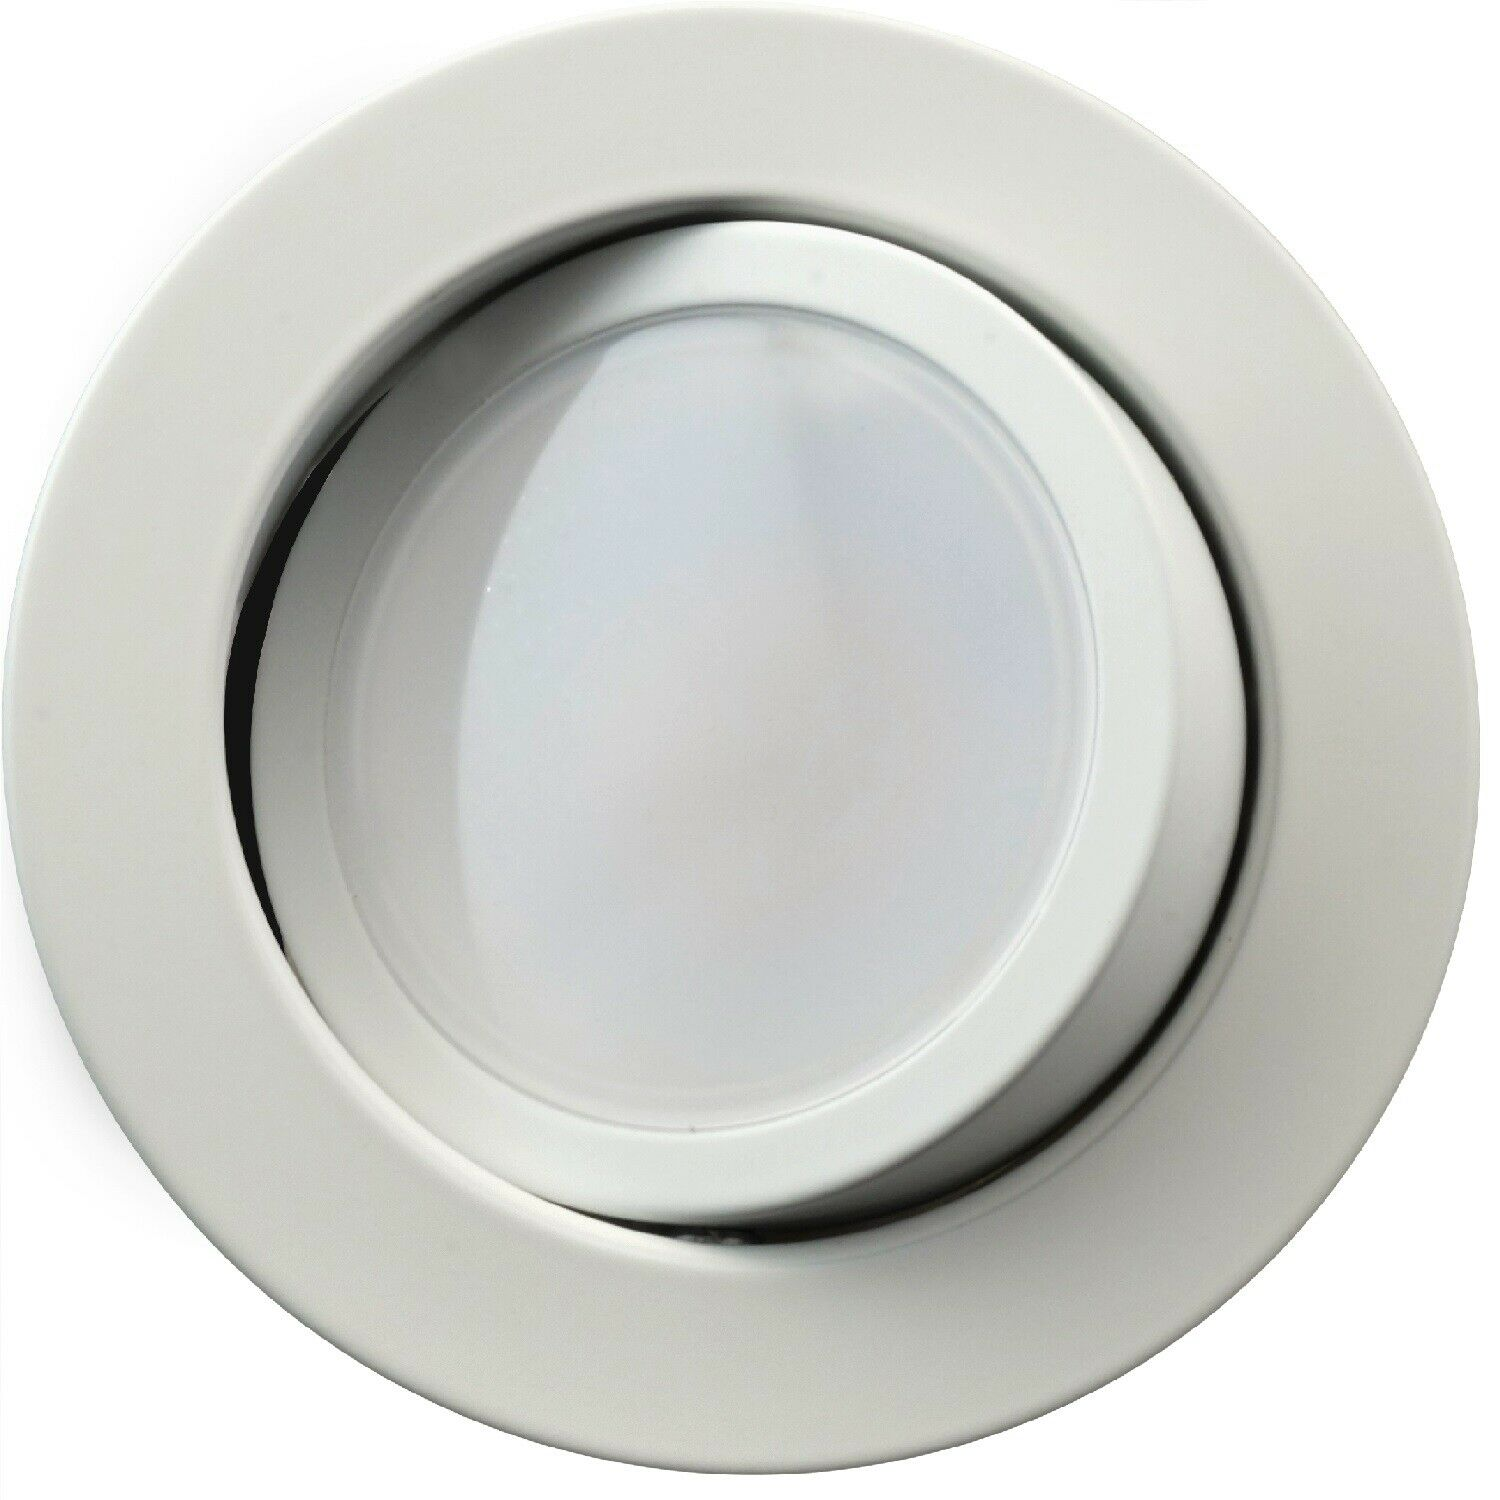 Nicor 4 pulgadas LED Downlight De Cardán Kit de actualización, acabado blancoo 3000K Regulable